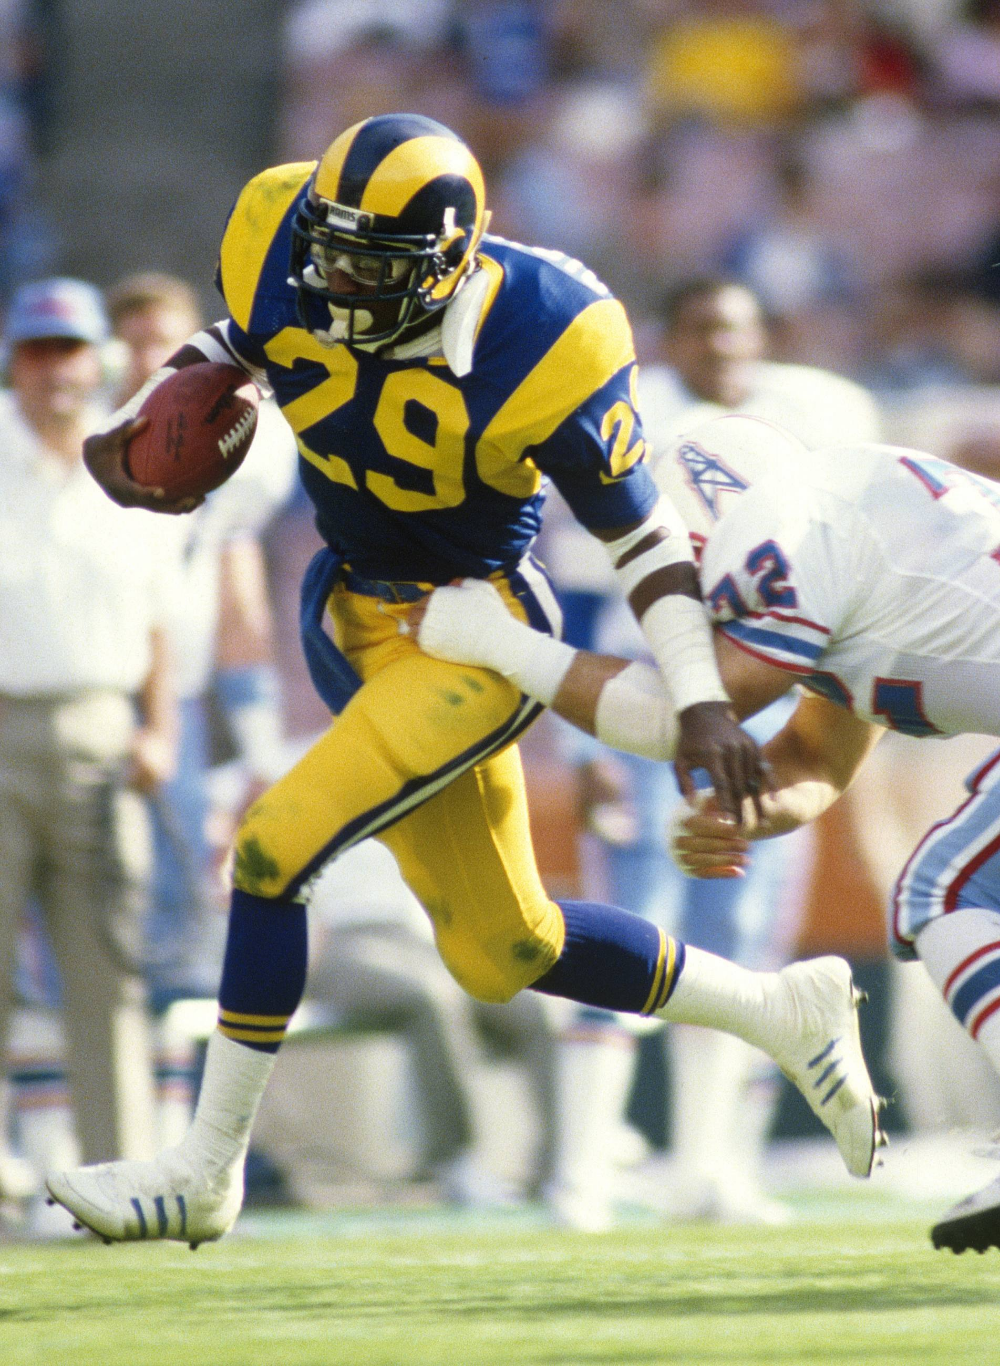 The Top 10 Greatest Moments In Los Angeles Rams History Discover Los Angeles Eric Dickerson Nfl Football Players Football Images